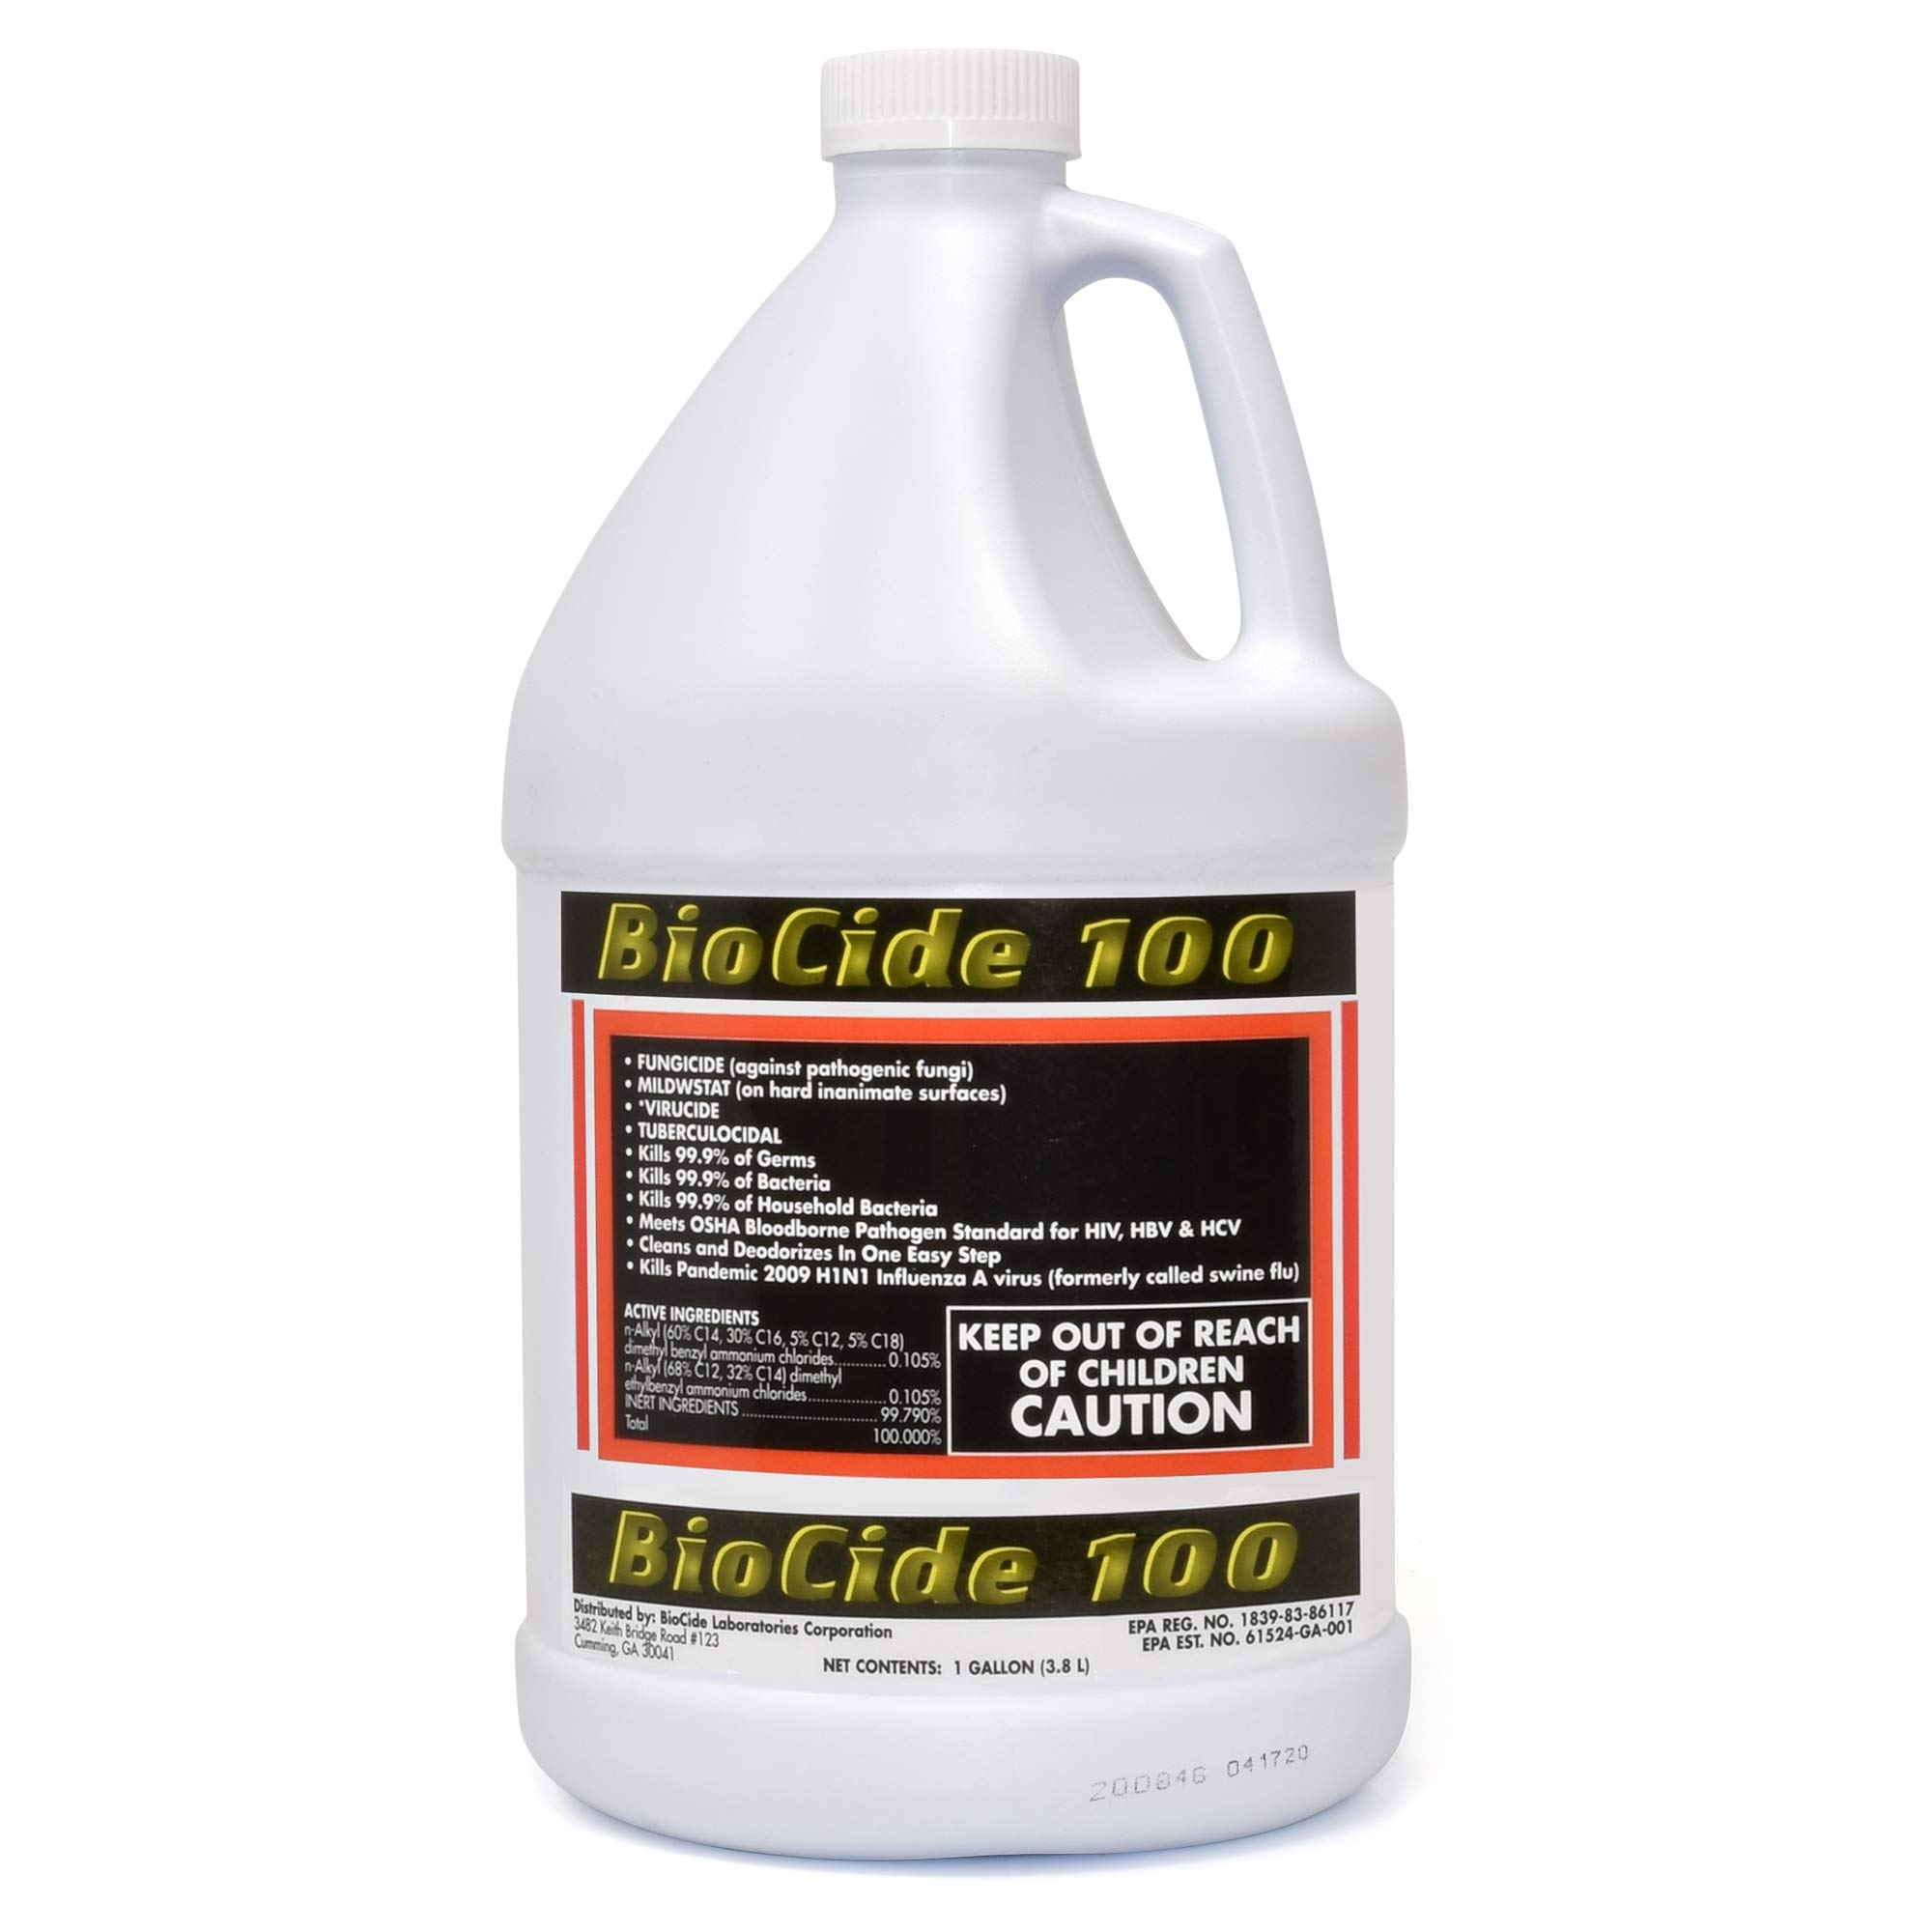 Biocide 100 Multi-Purpose Cleaner and Disinfectant Spray | DIY Mold, Mildew and Fungi Remover | Eliminates Bacteria, Germs and Viruses | 1-Gallon